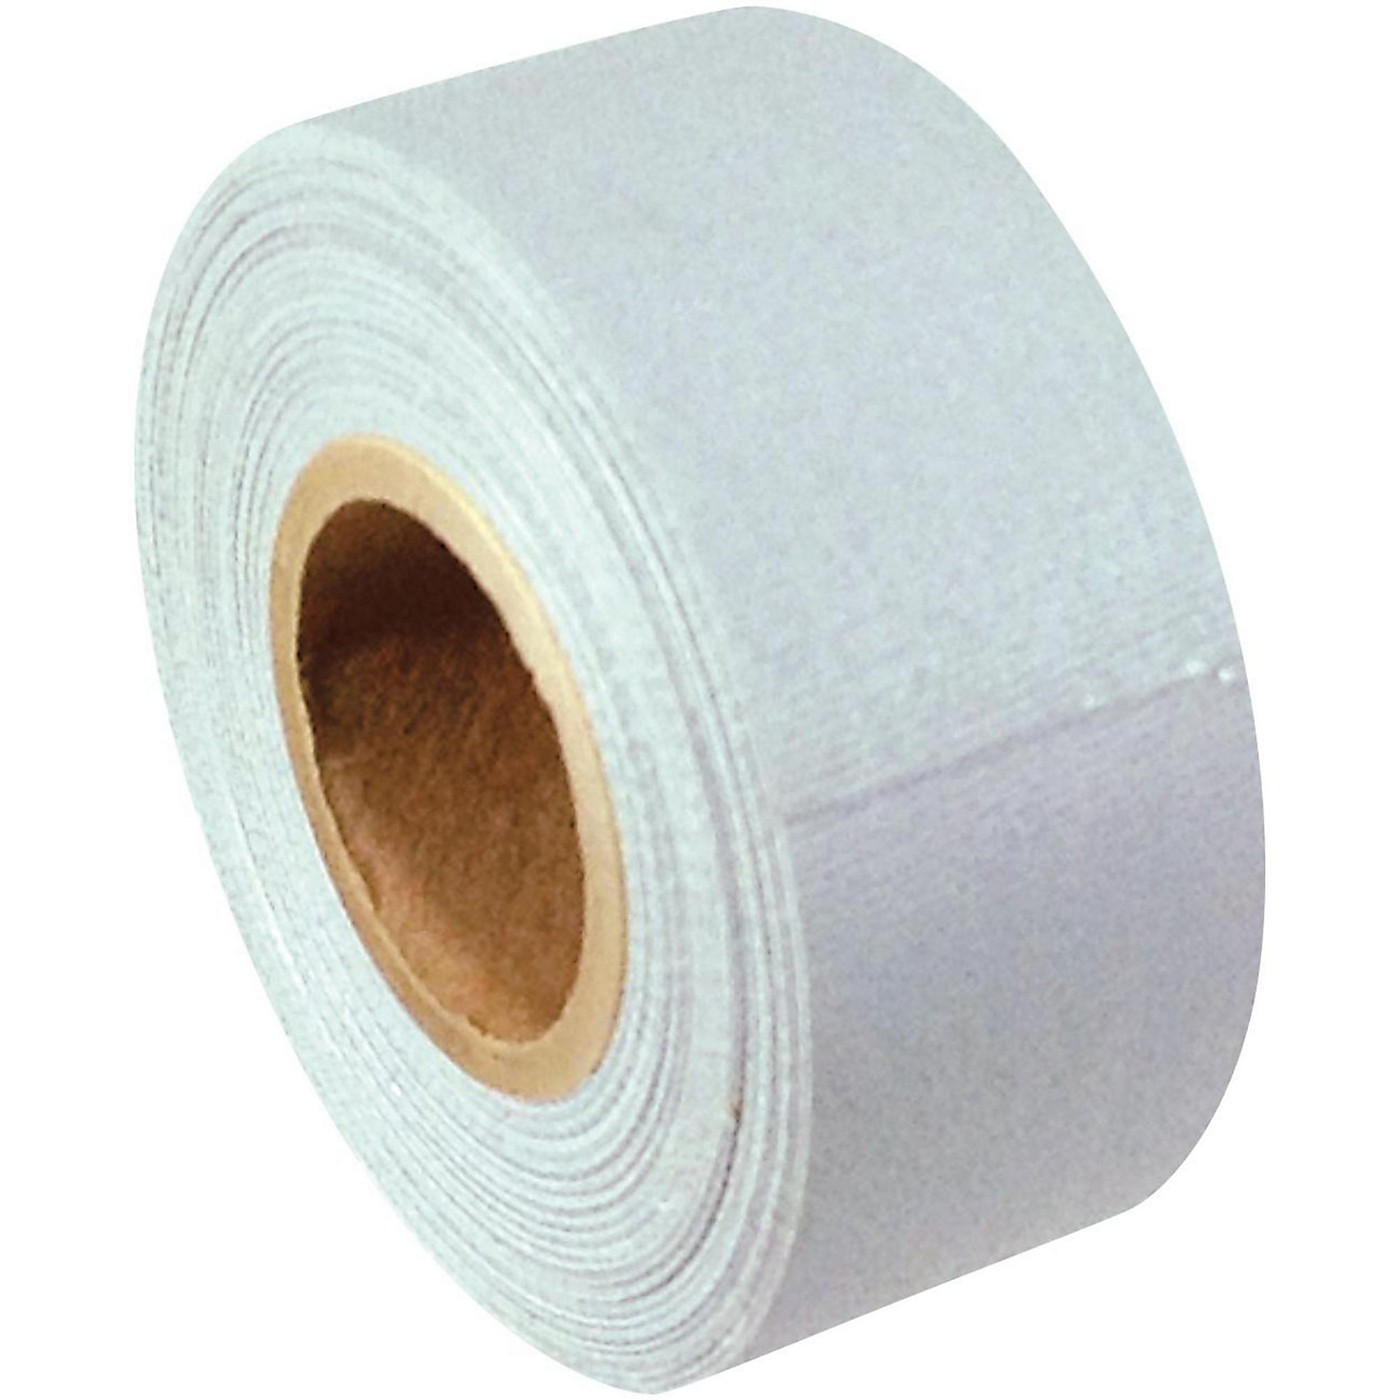 American Recorder Technologies Mini Roll Gaffers Tape 1 In x 8 Yards Basic Colors thumbnail